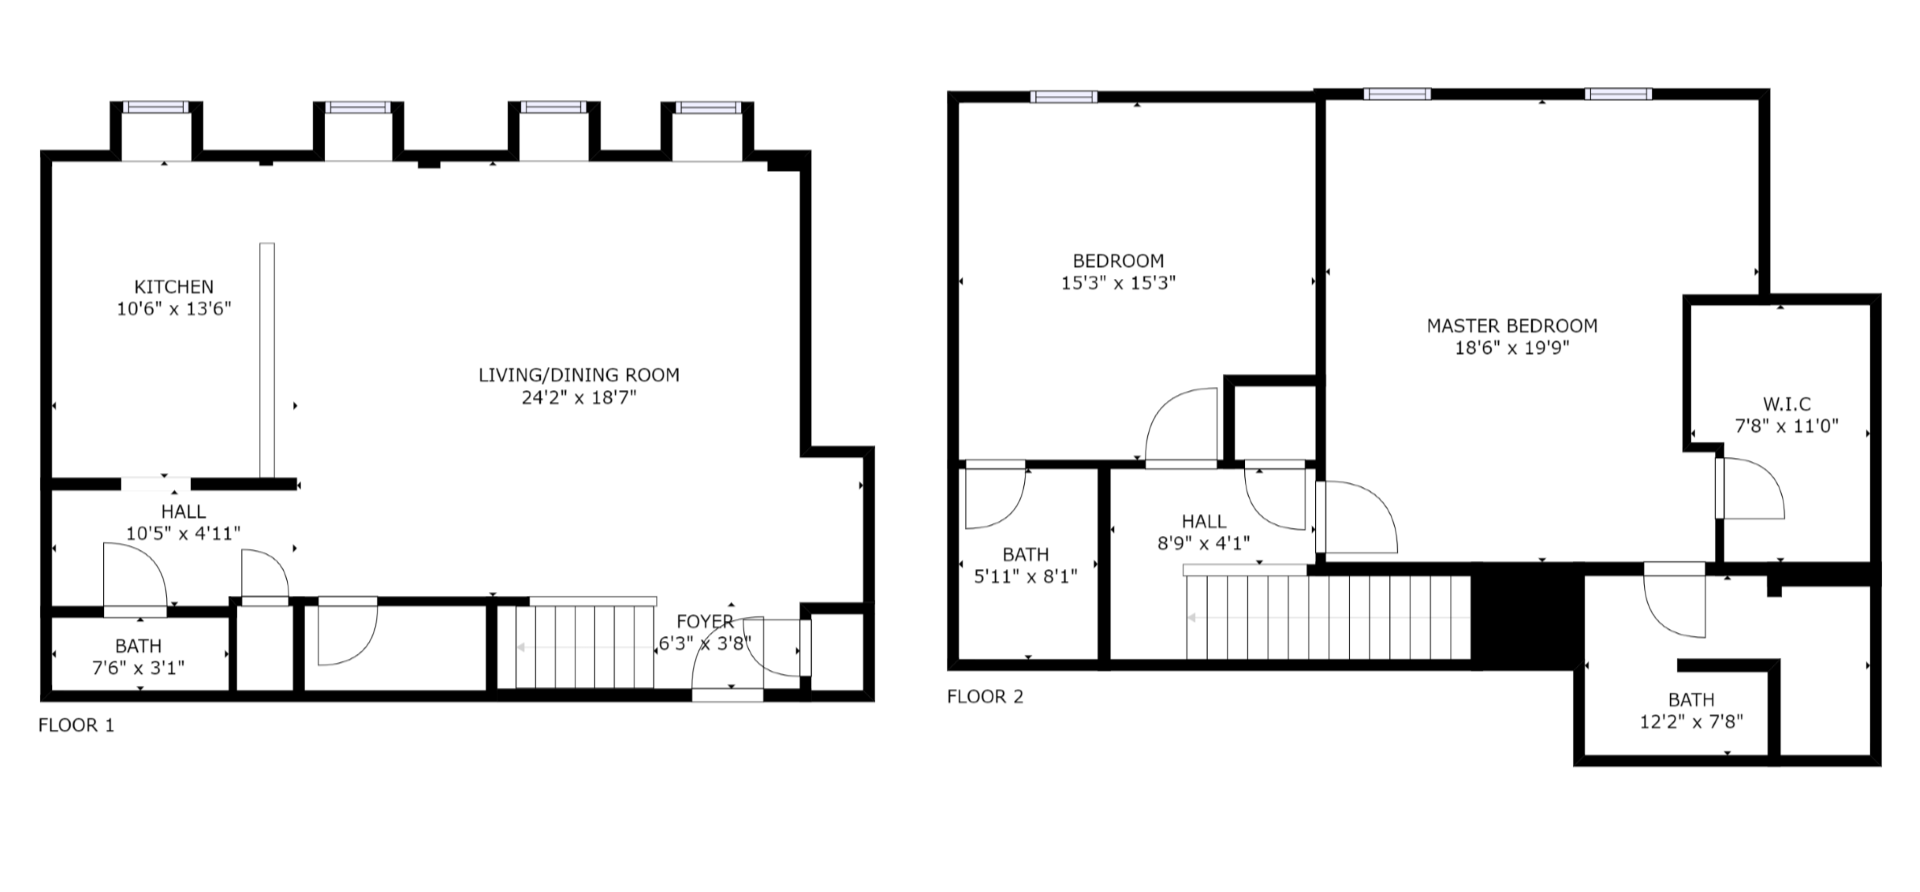 Floor Plan for Water Street Residence Unit B - 2 Bed / 2.5 Bath, Luxury Apartment